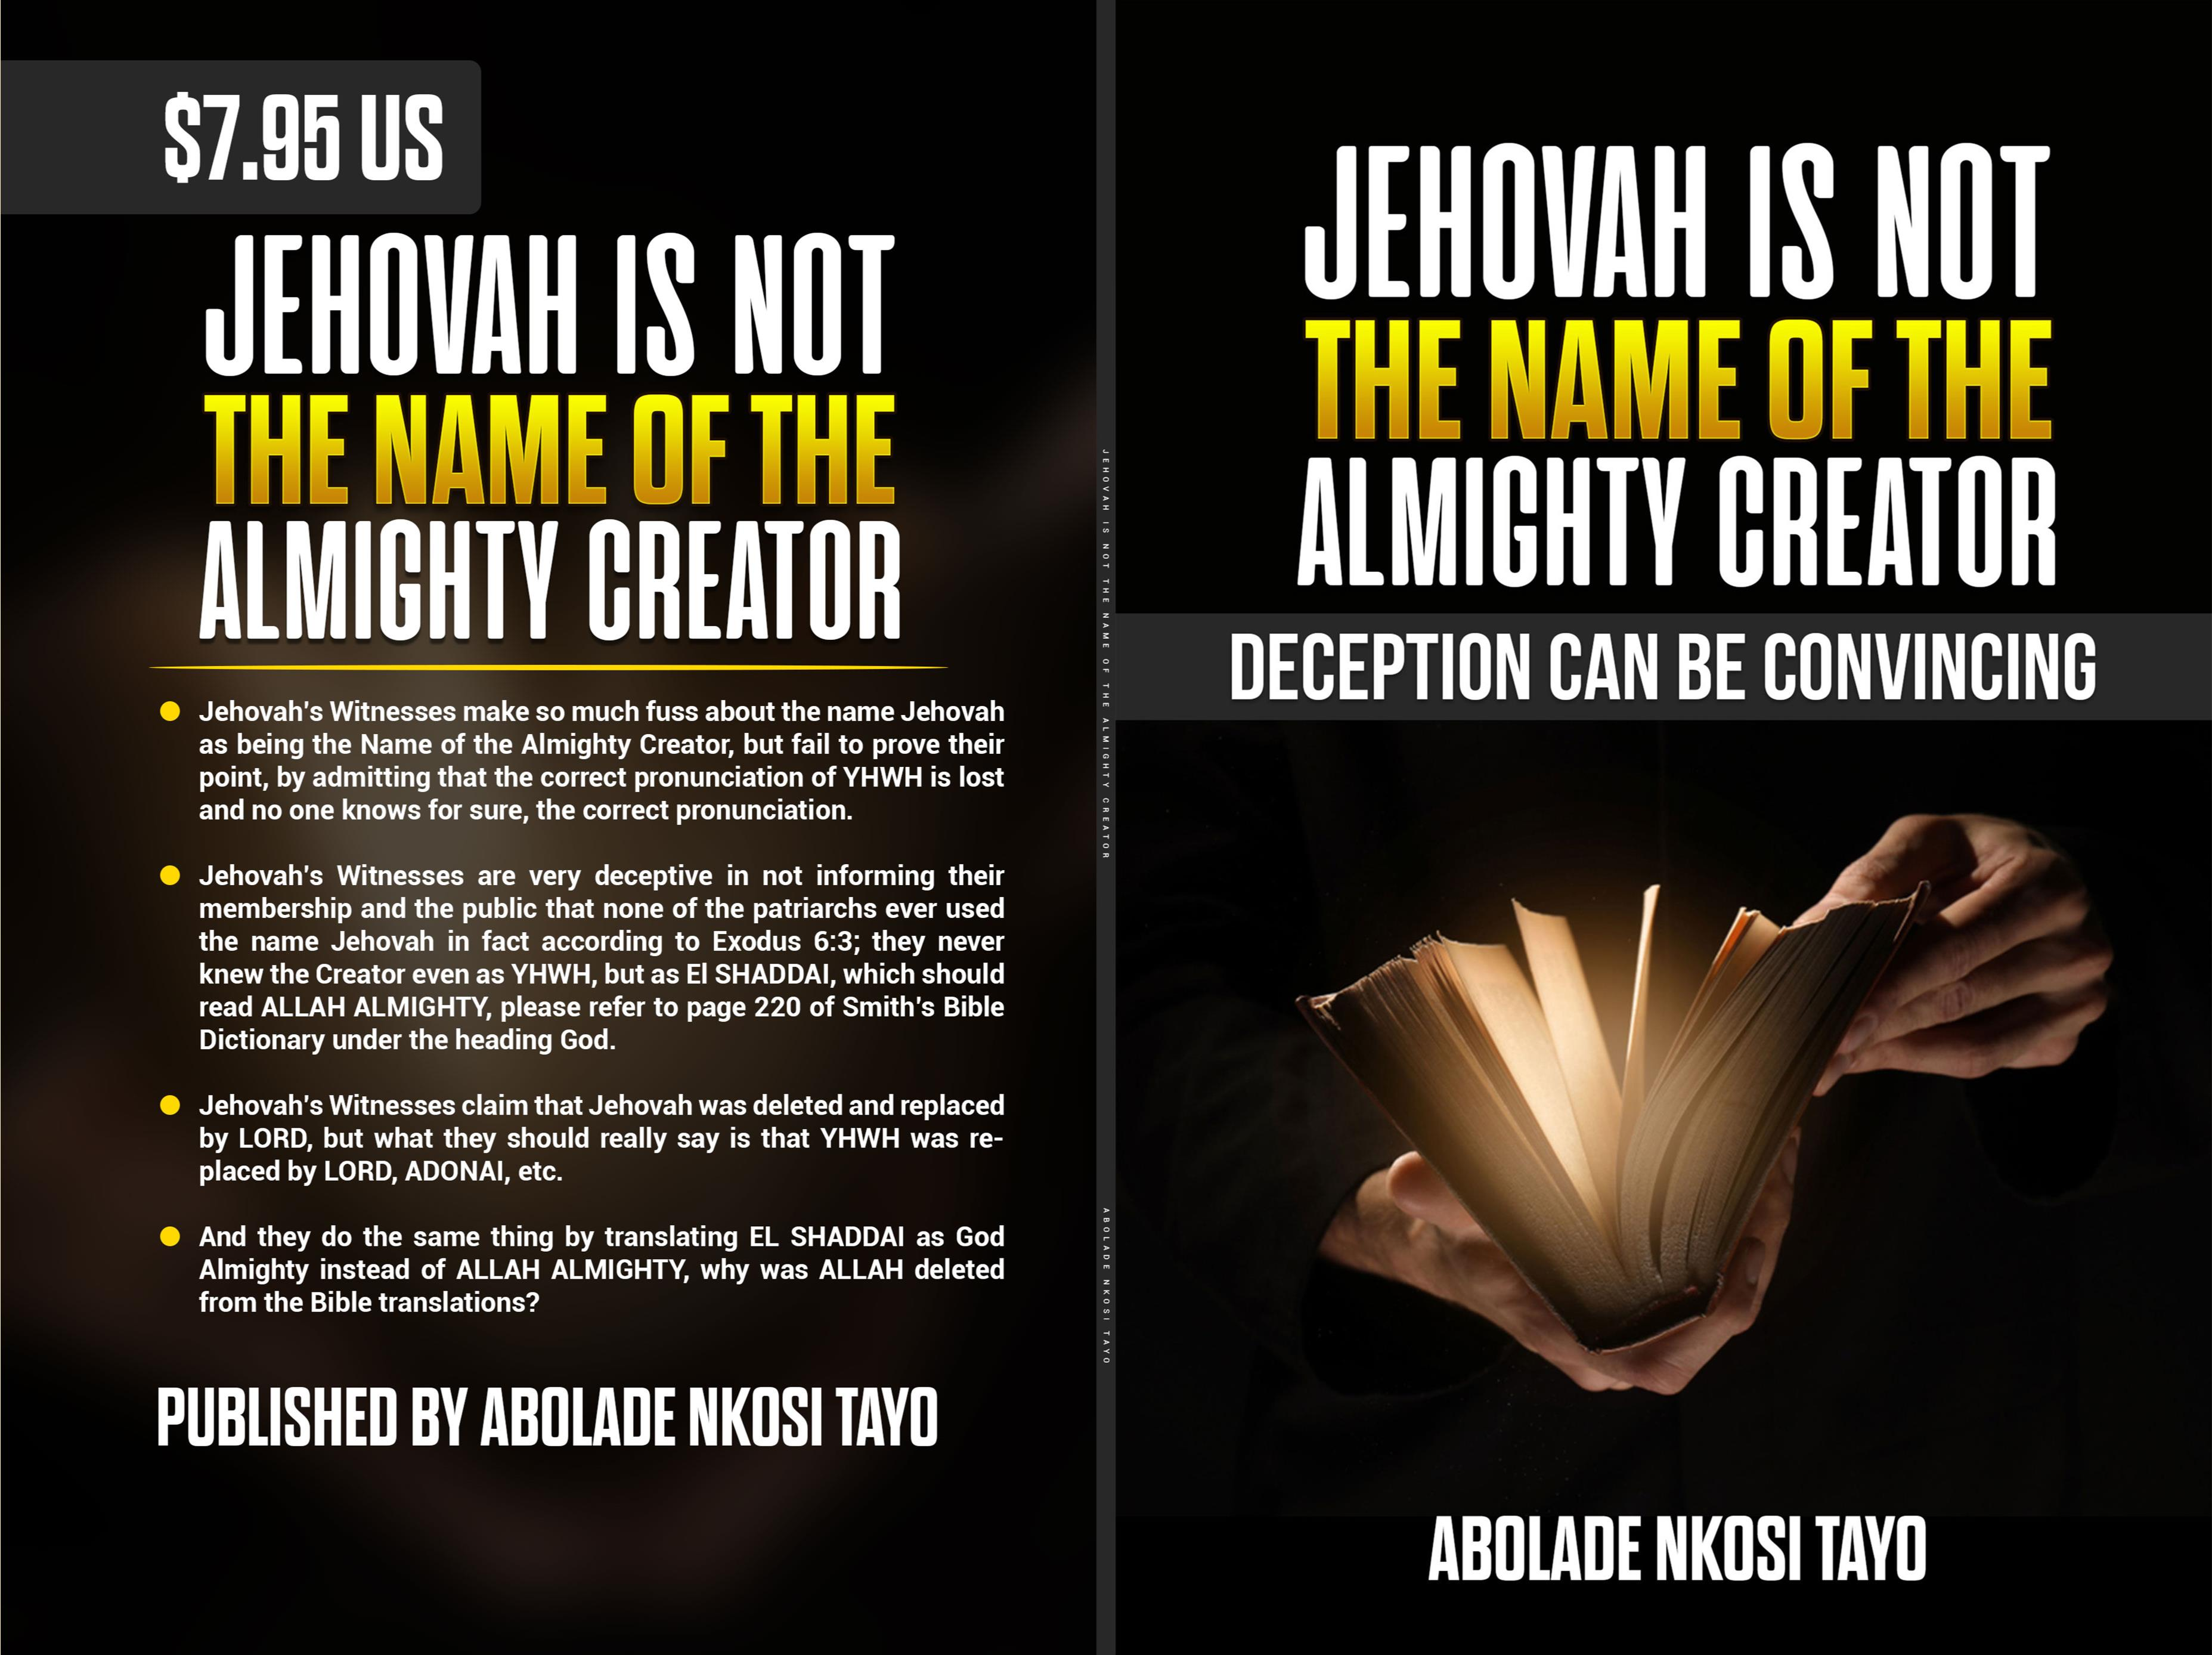 JEHOVAH IS NOT THE NAME OF THE ALMIGHTY CREATOR cover image